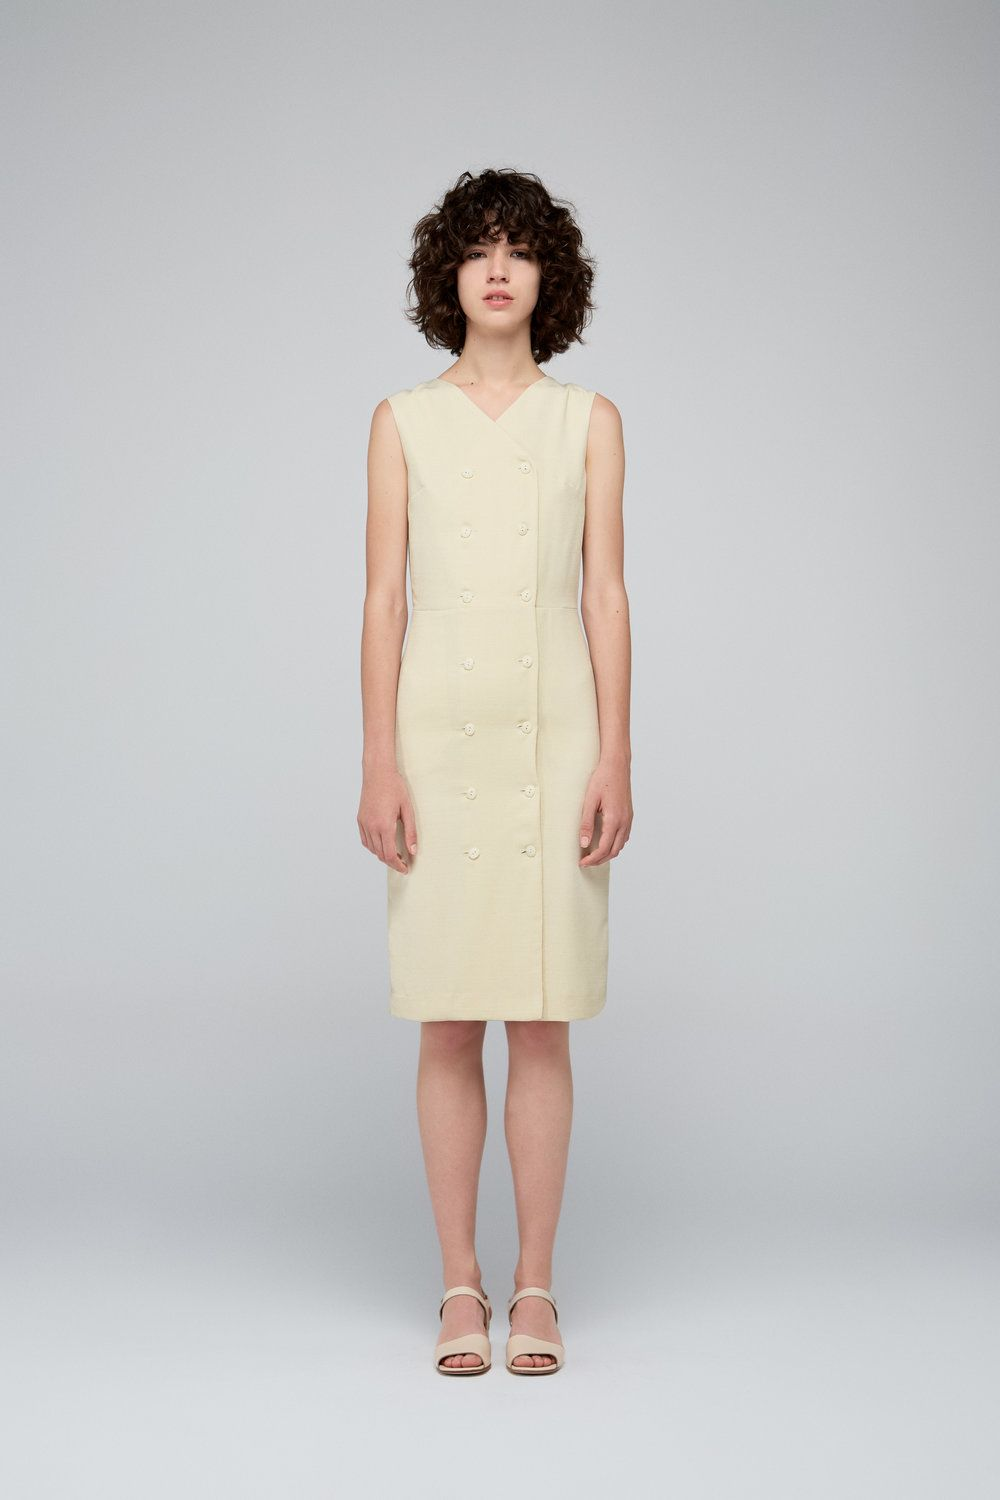 Double Breasted Wrap Dress In Crepe Fabric 100 Polyester Fabric From Spain Made In Spain The Model Is 178 Cm And Wears Siz With Images Dresses Ethical Fashion Fashion